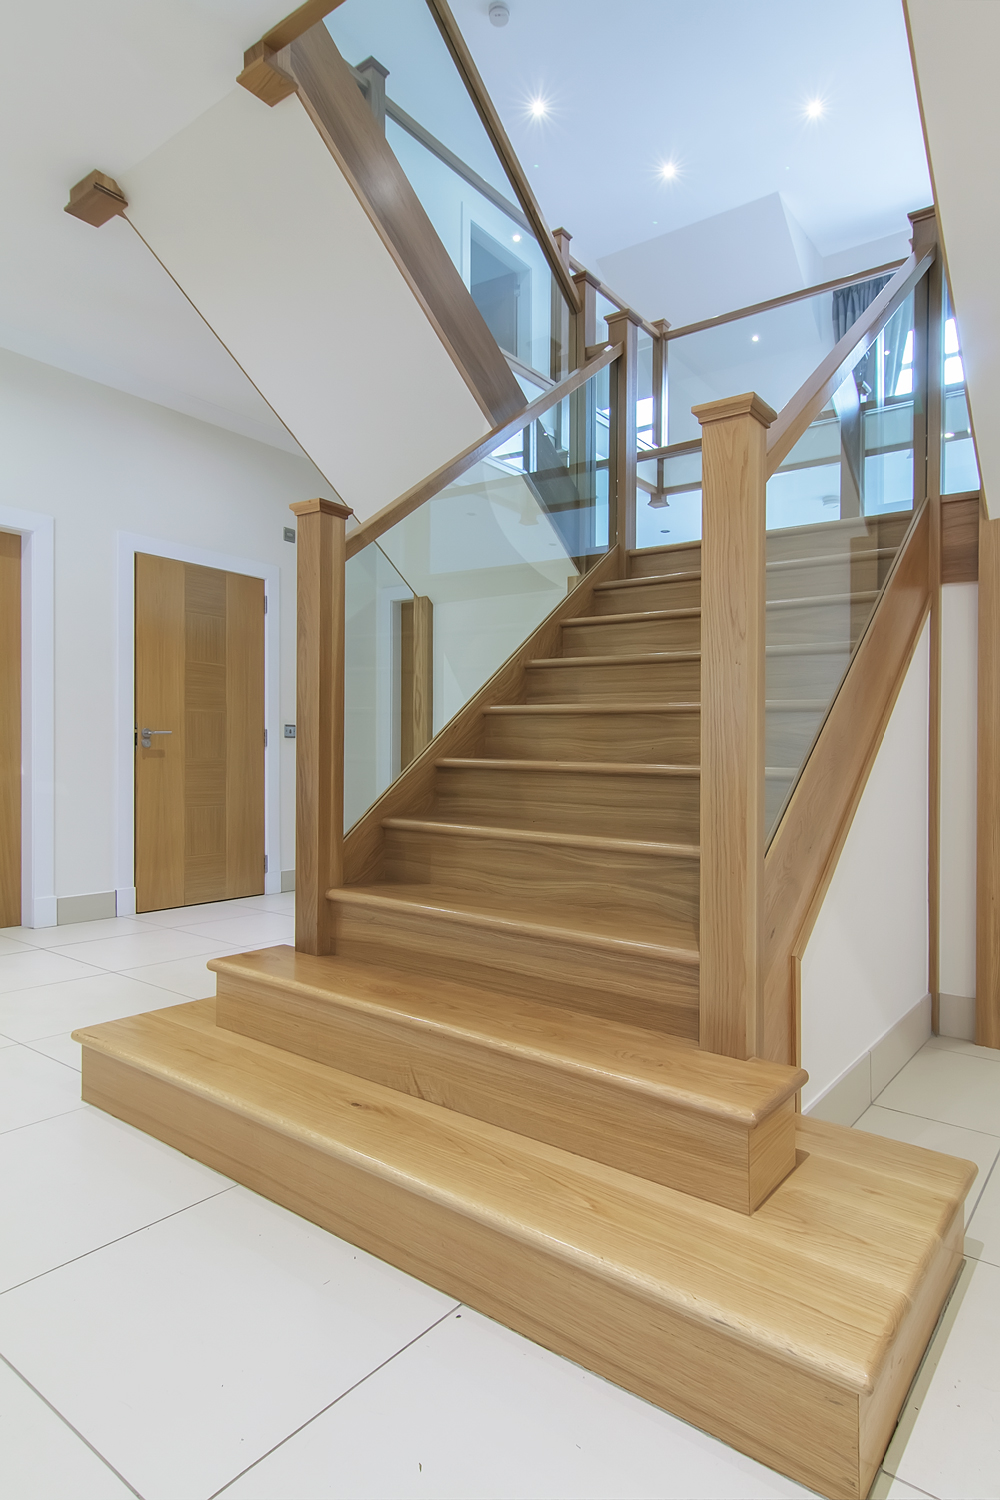 garage step brick ideas pinterest - Bespoke Staircase Design Stair Manufacture and